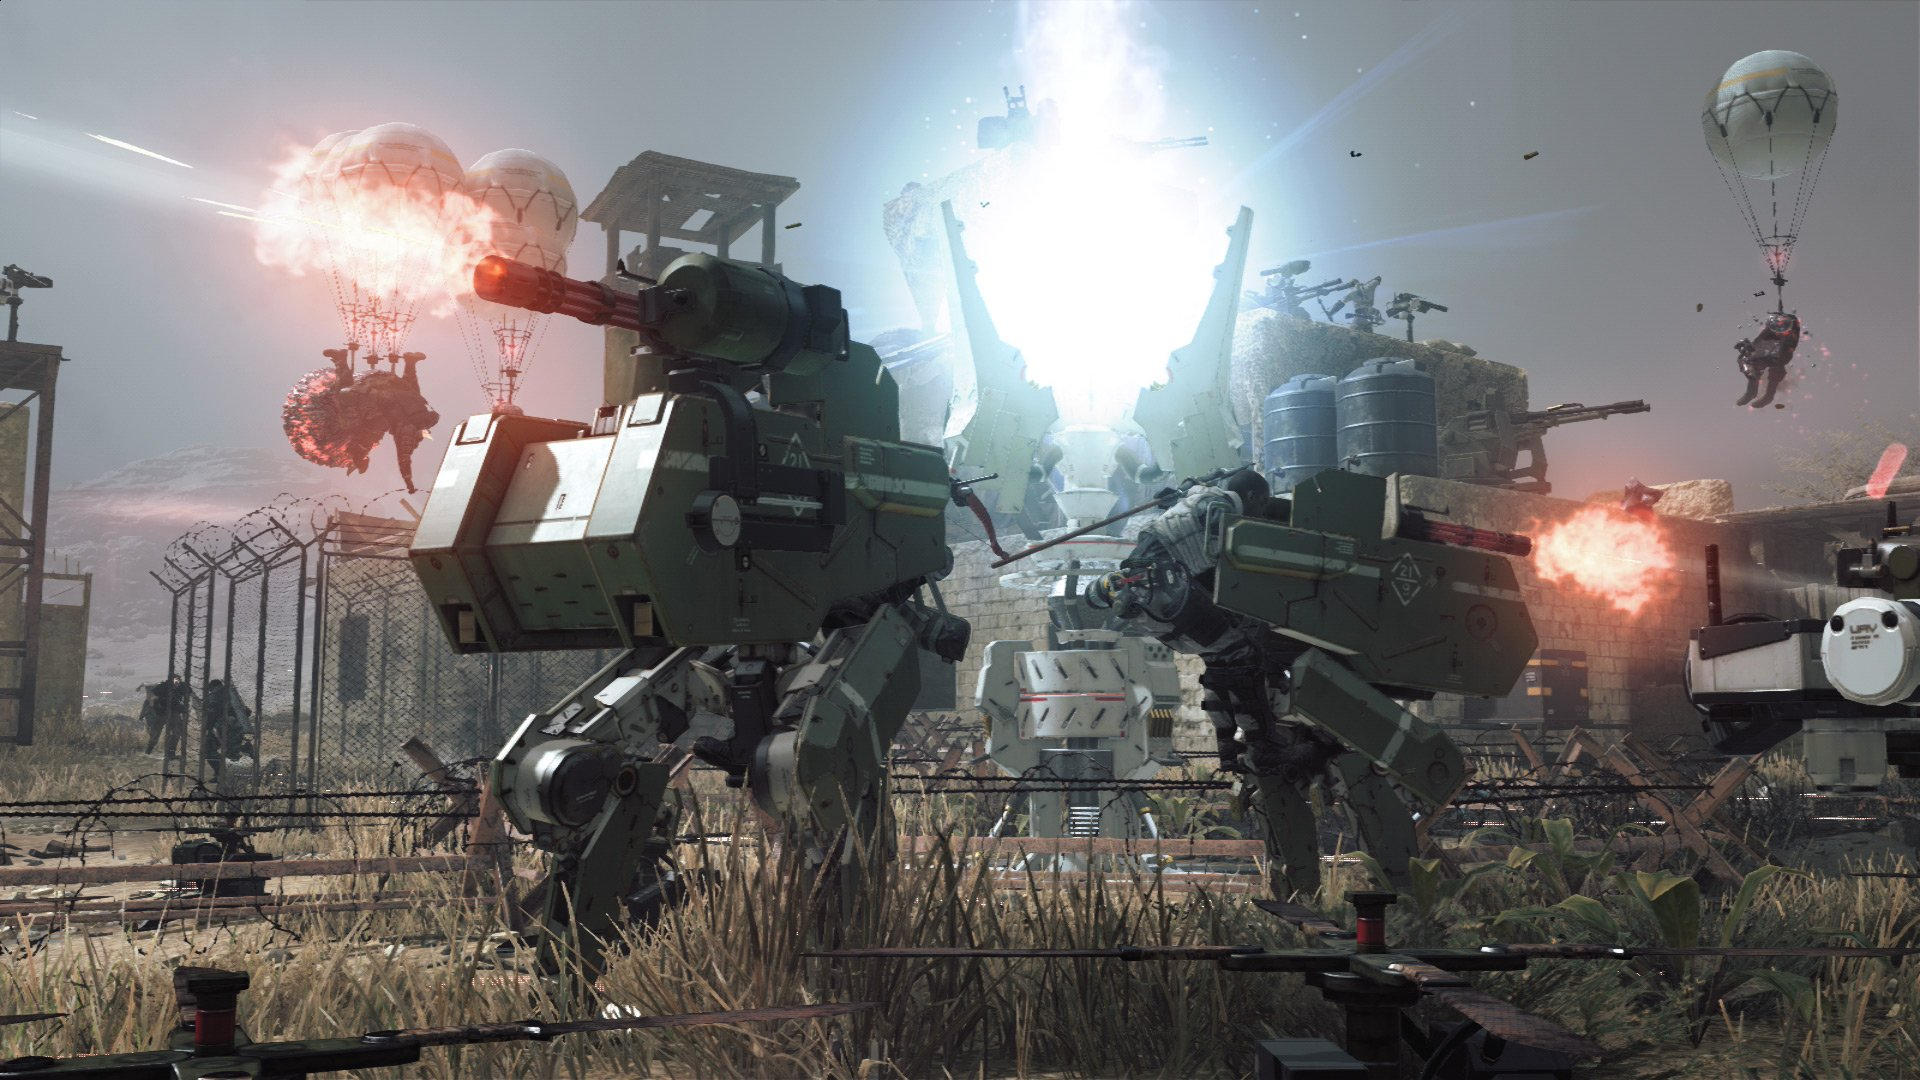 Now you can check out Metal Gear Survive for yourself screenshot